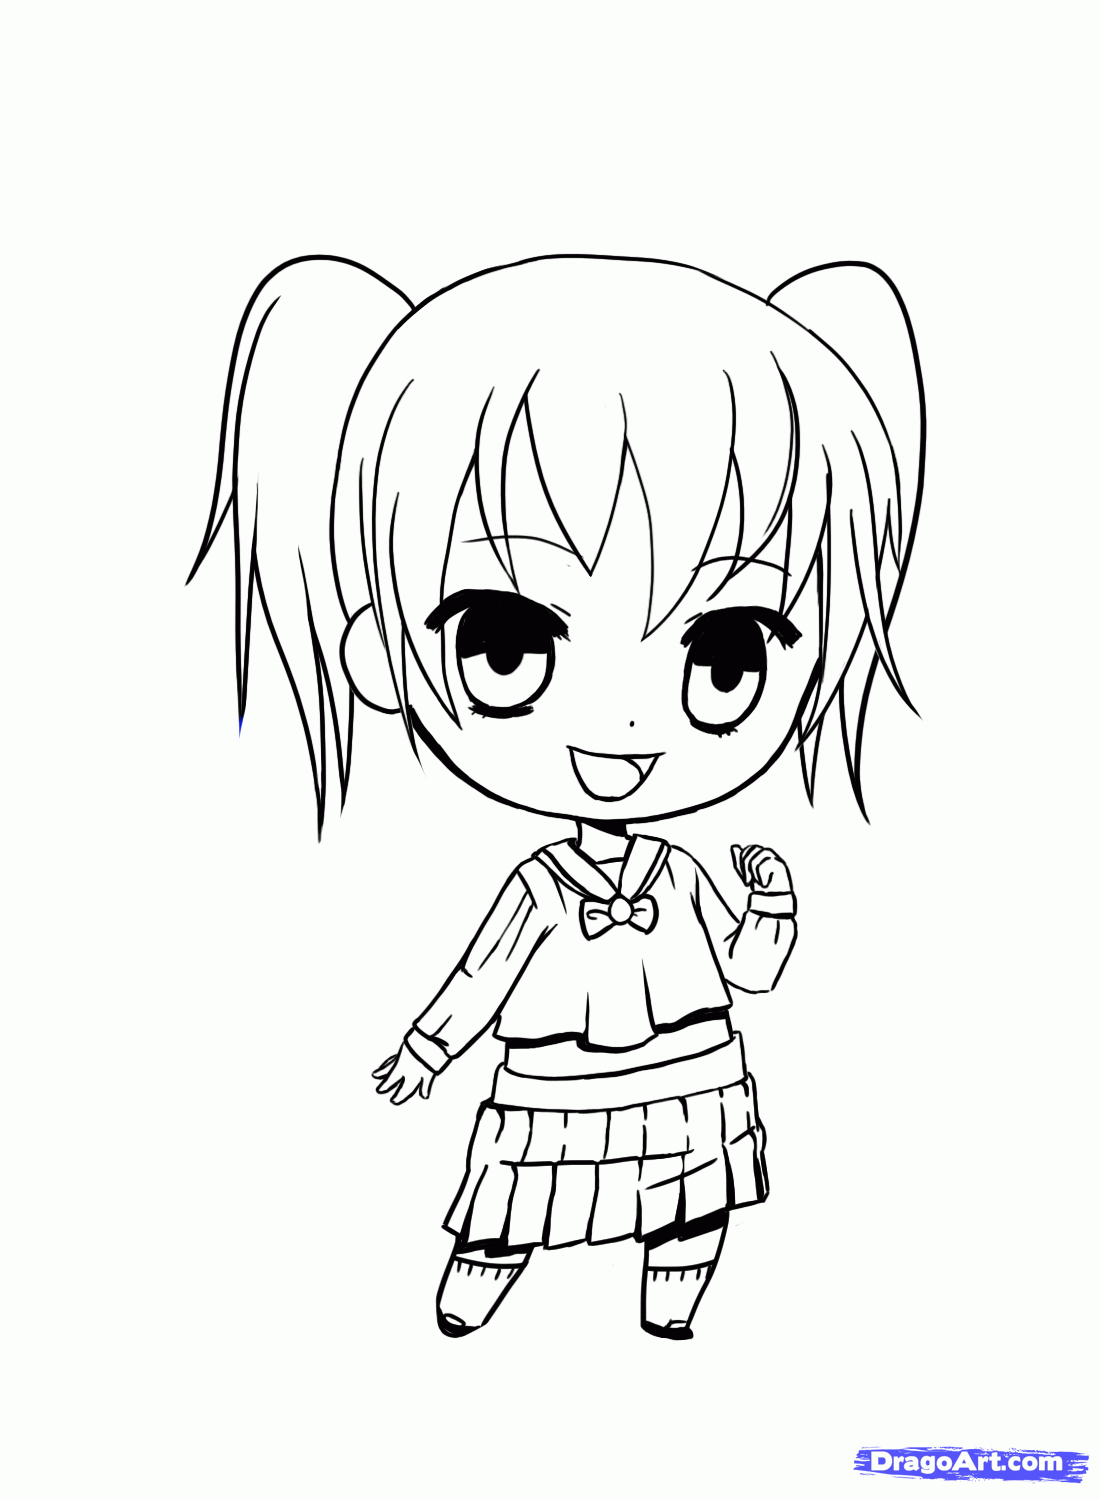 1100x1500 How To Draw Anime Kid Girl Pics Of Anime Girls Easy To Draw Anime